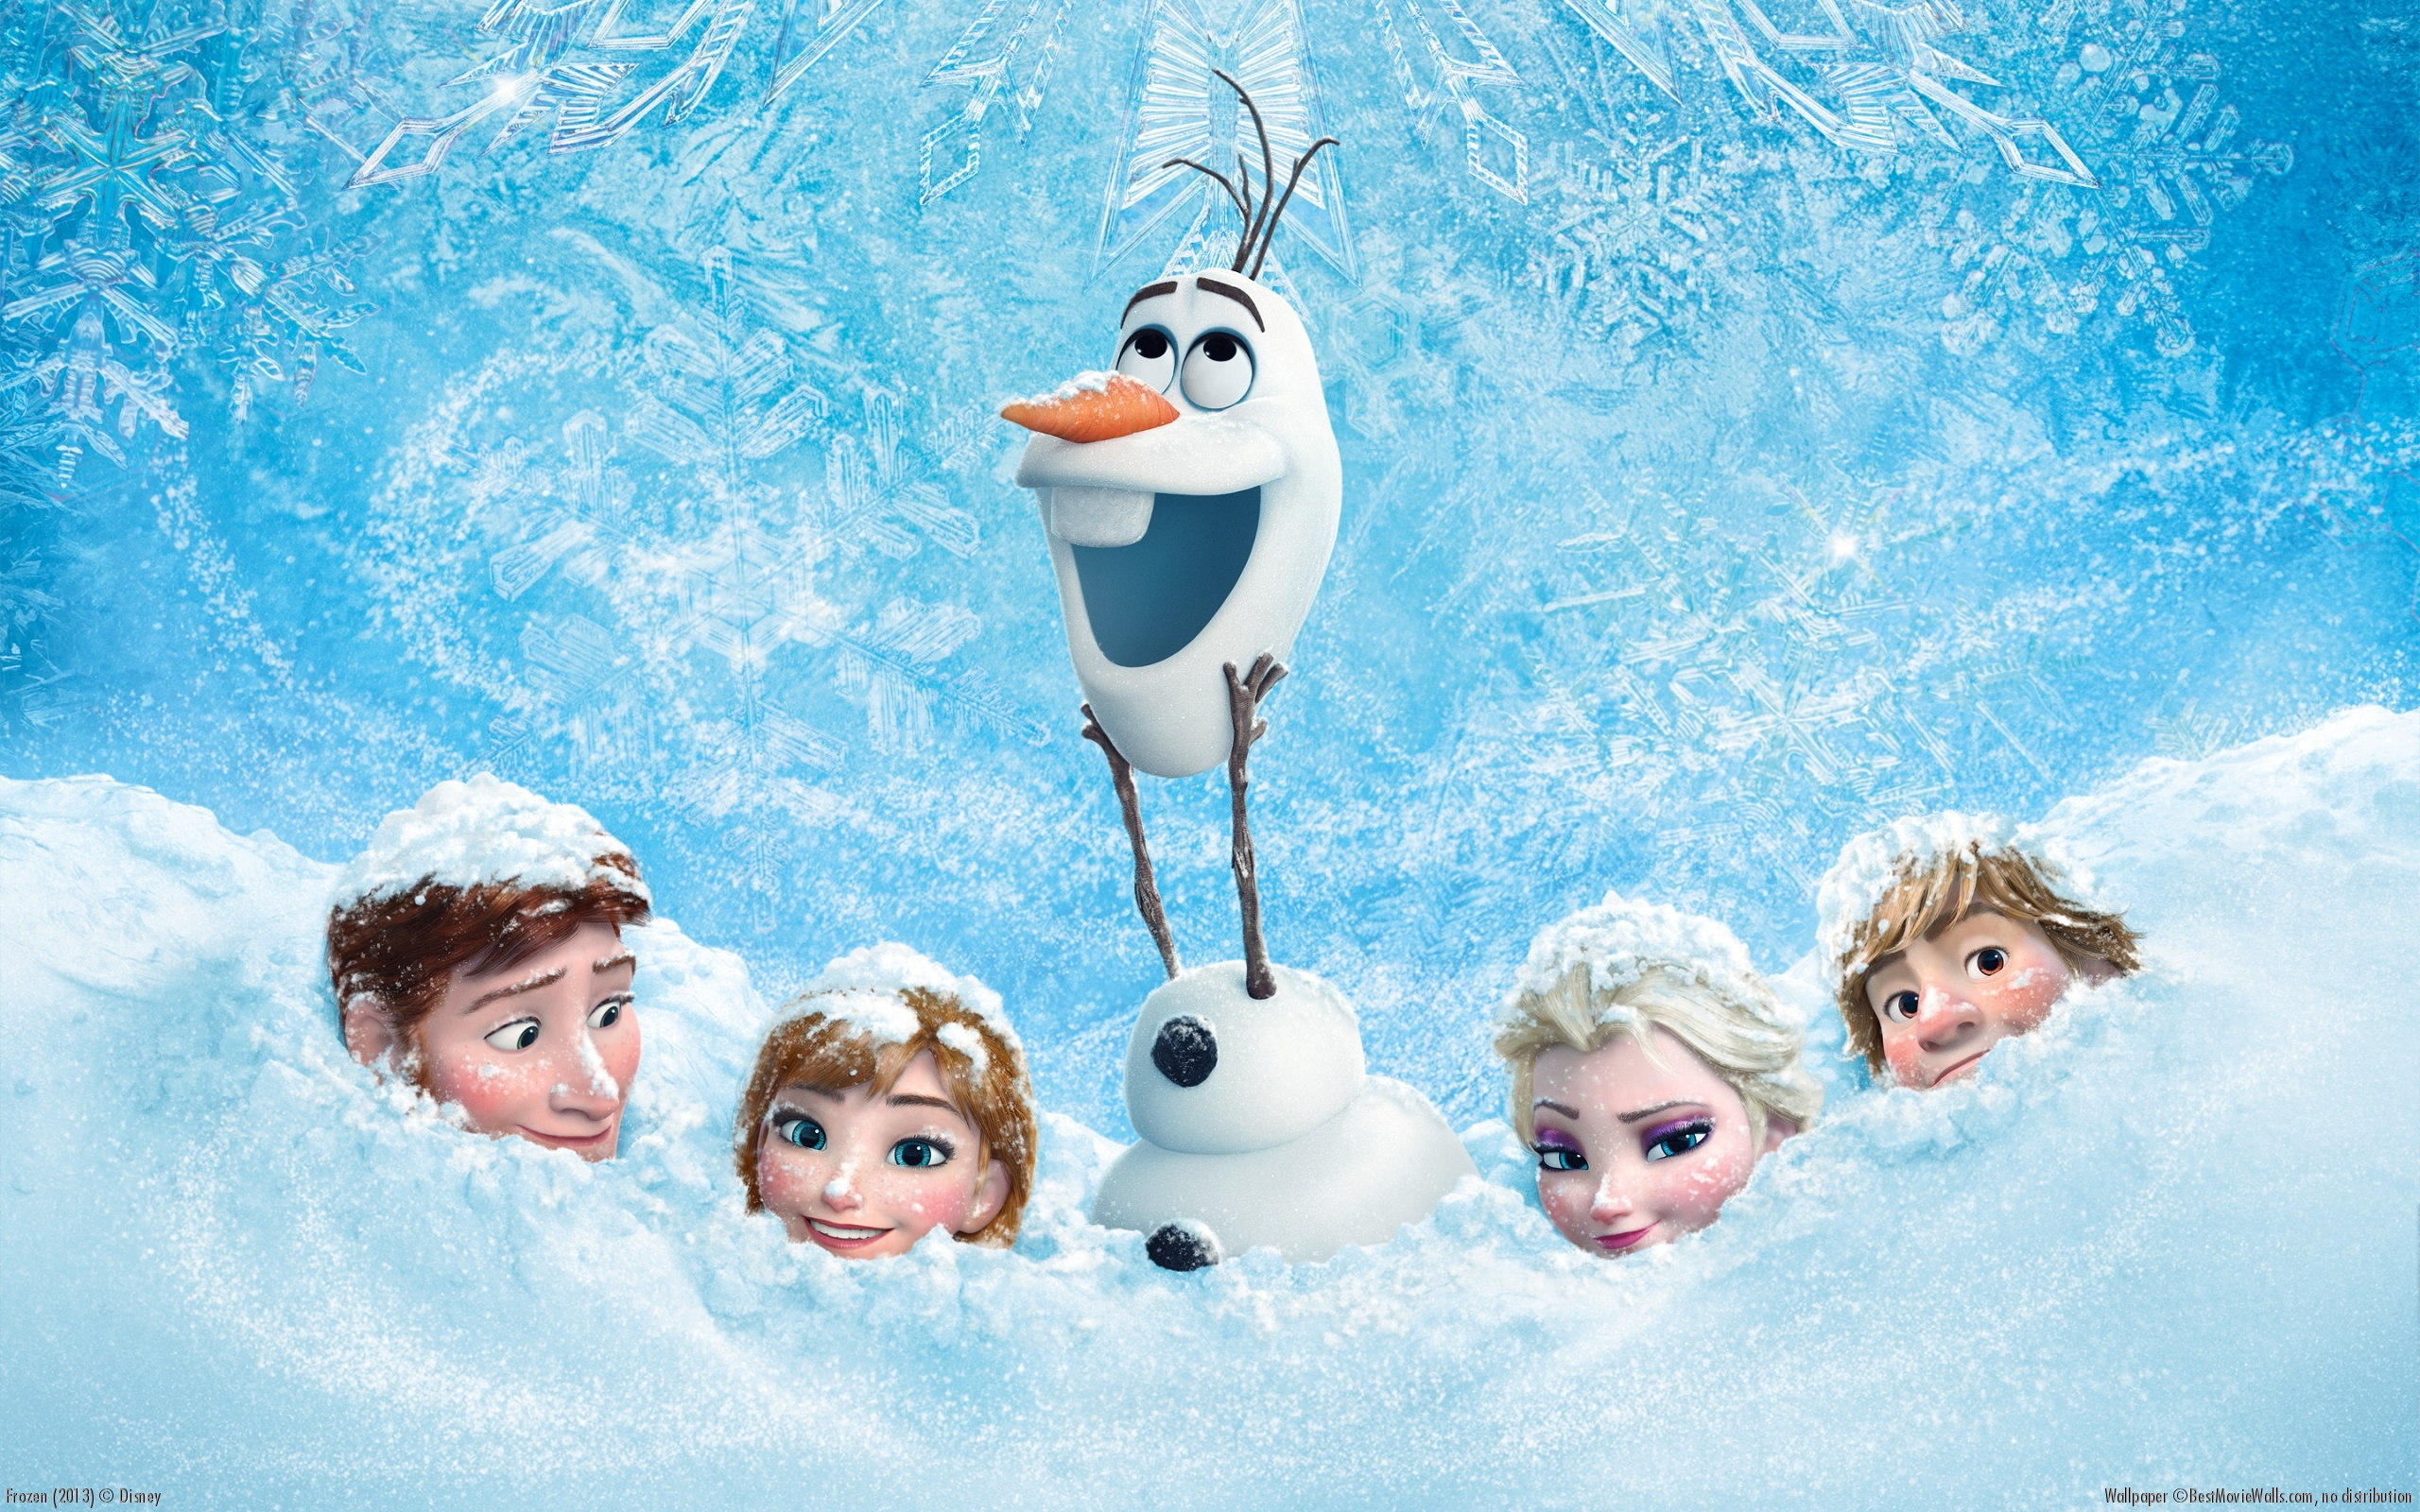 http://pollymay.files.wordpress.com/2013/12/frozen.jpg